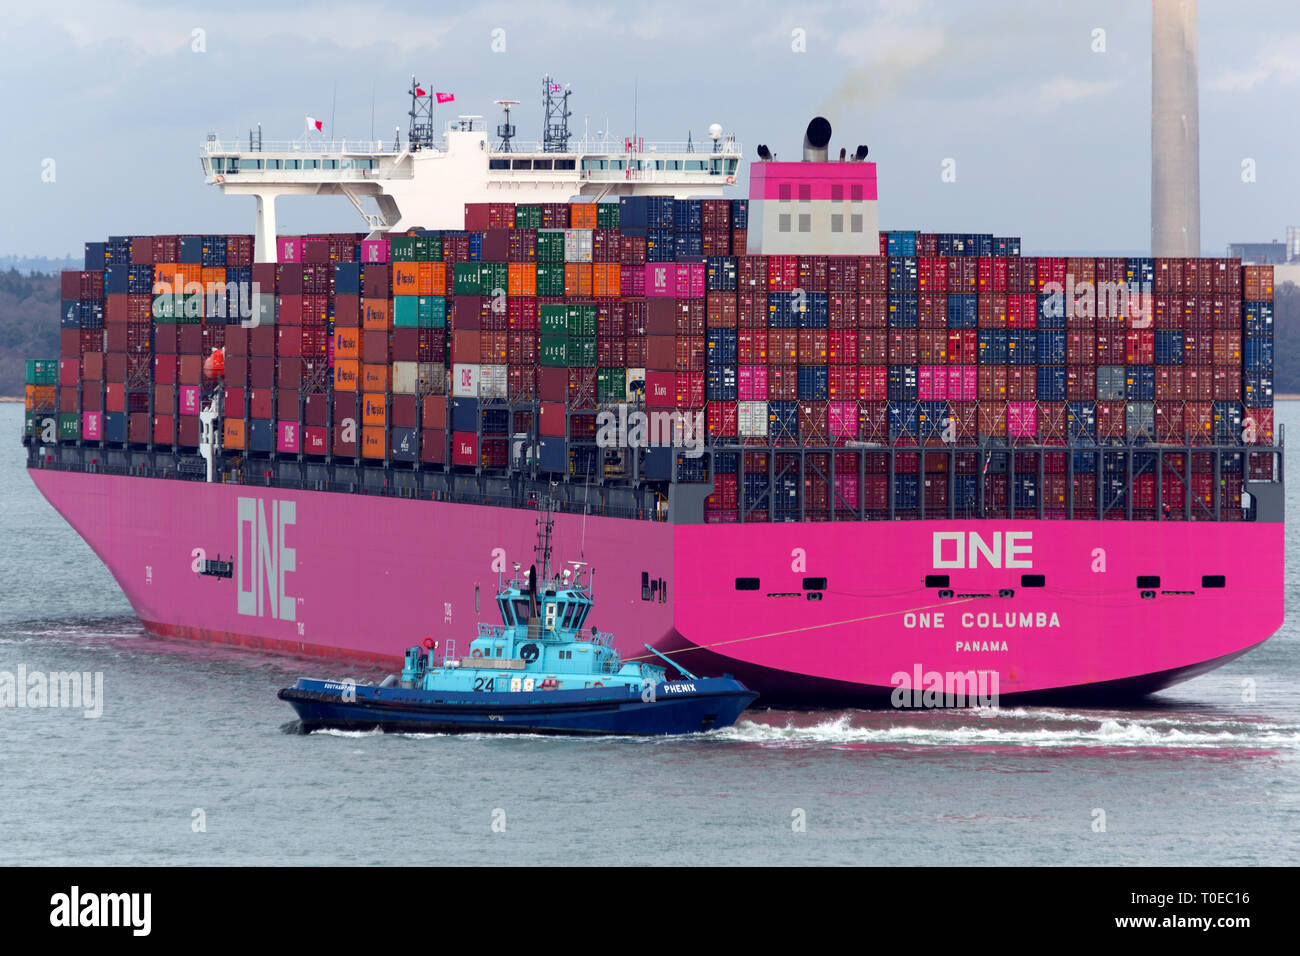 Pink,Ship, One Columbia, Panama, The Solent, heading, Southampton, Container Terminal, Cowes, Isle of Wight, Hampshire, England, UK.busy - Stock Image